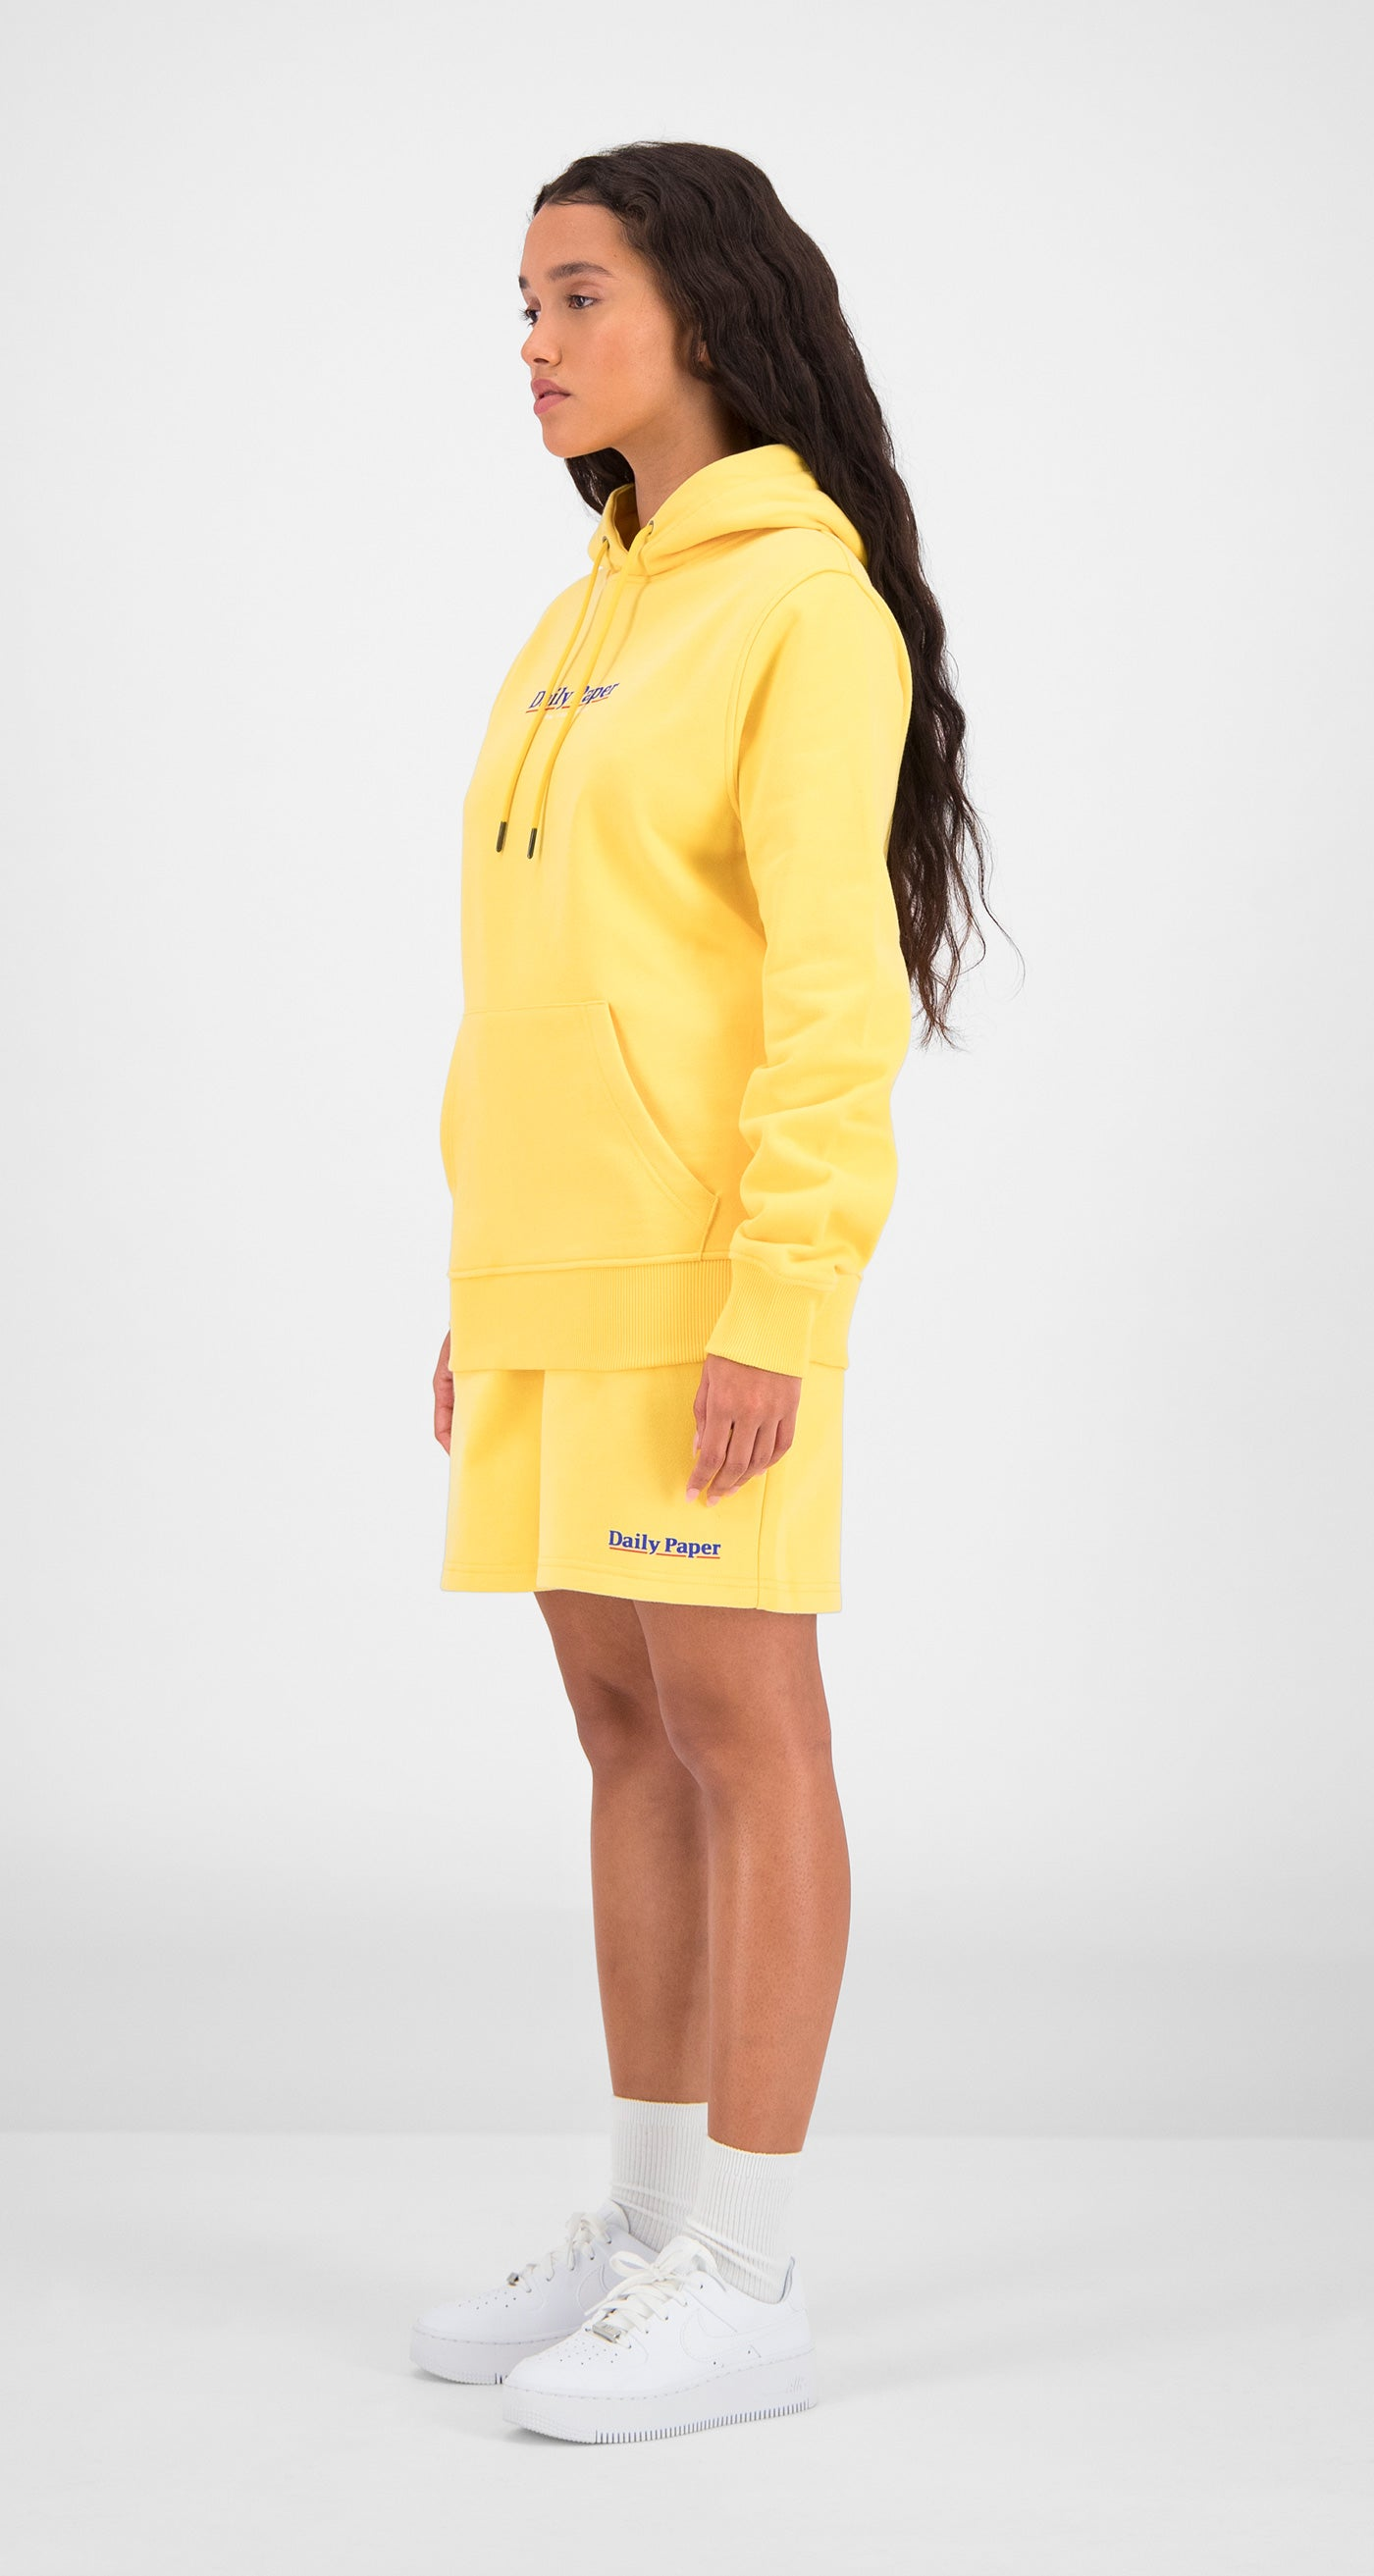 Daily Paper - Yellow Essential Hoody Women